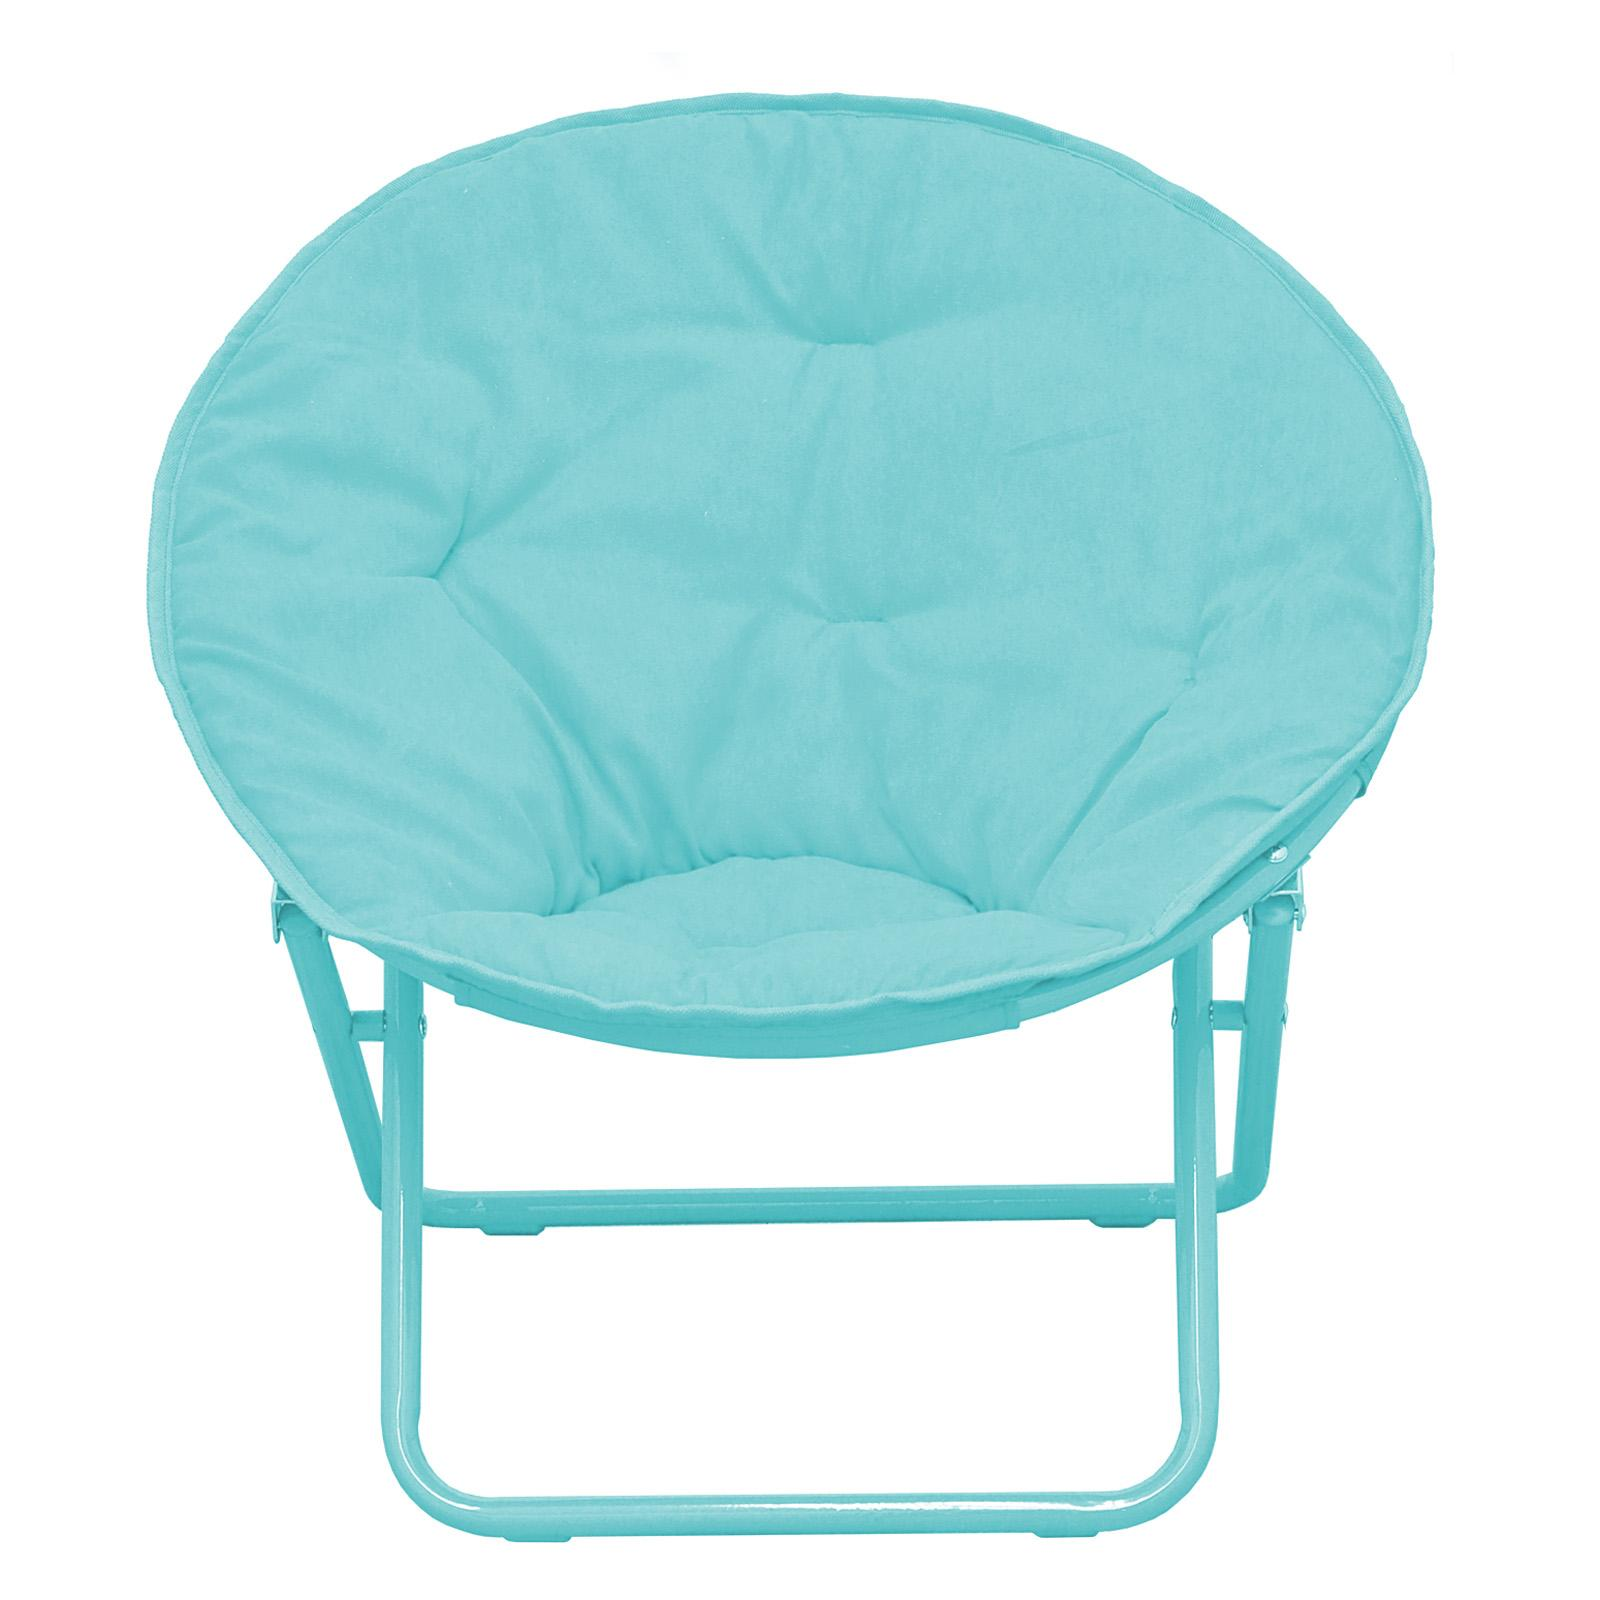 American Kids Solid Faux-Fur Saucer Chair Teal - WK656330